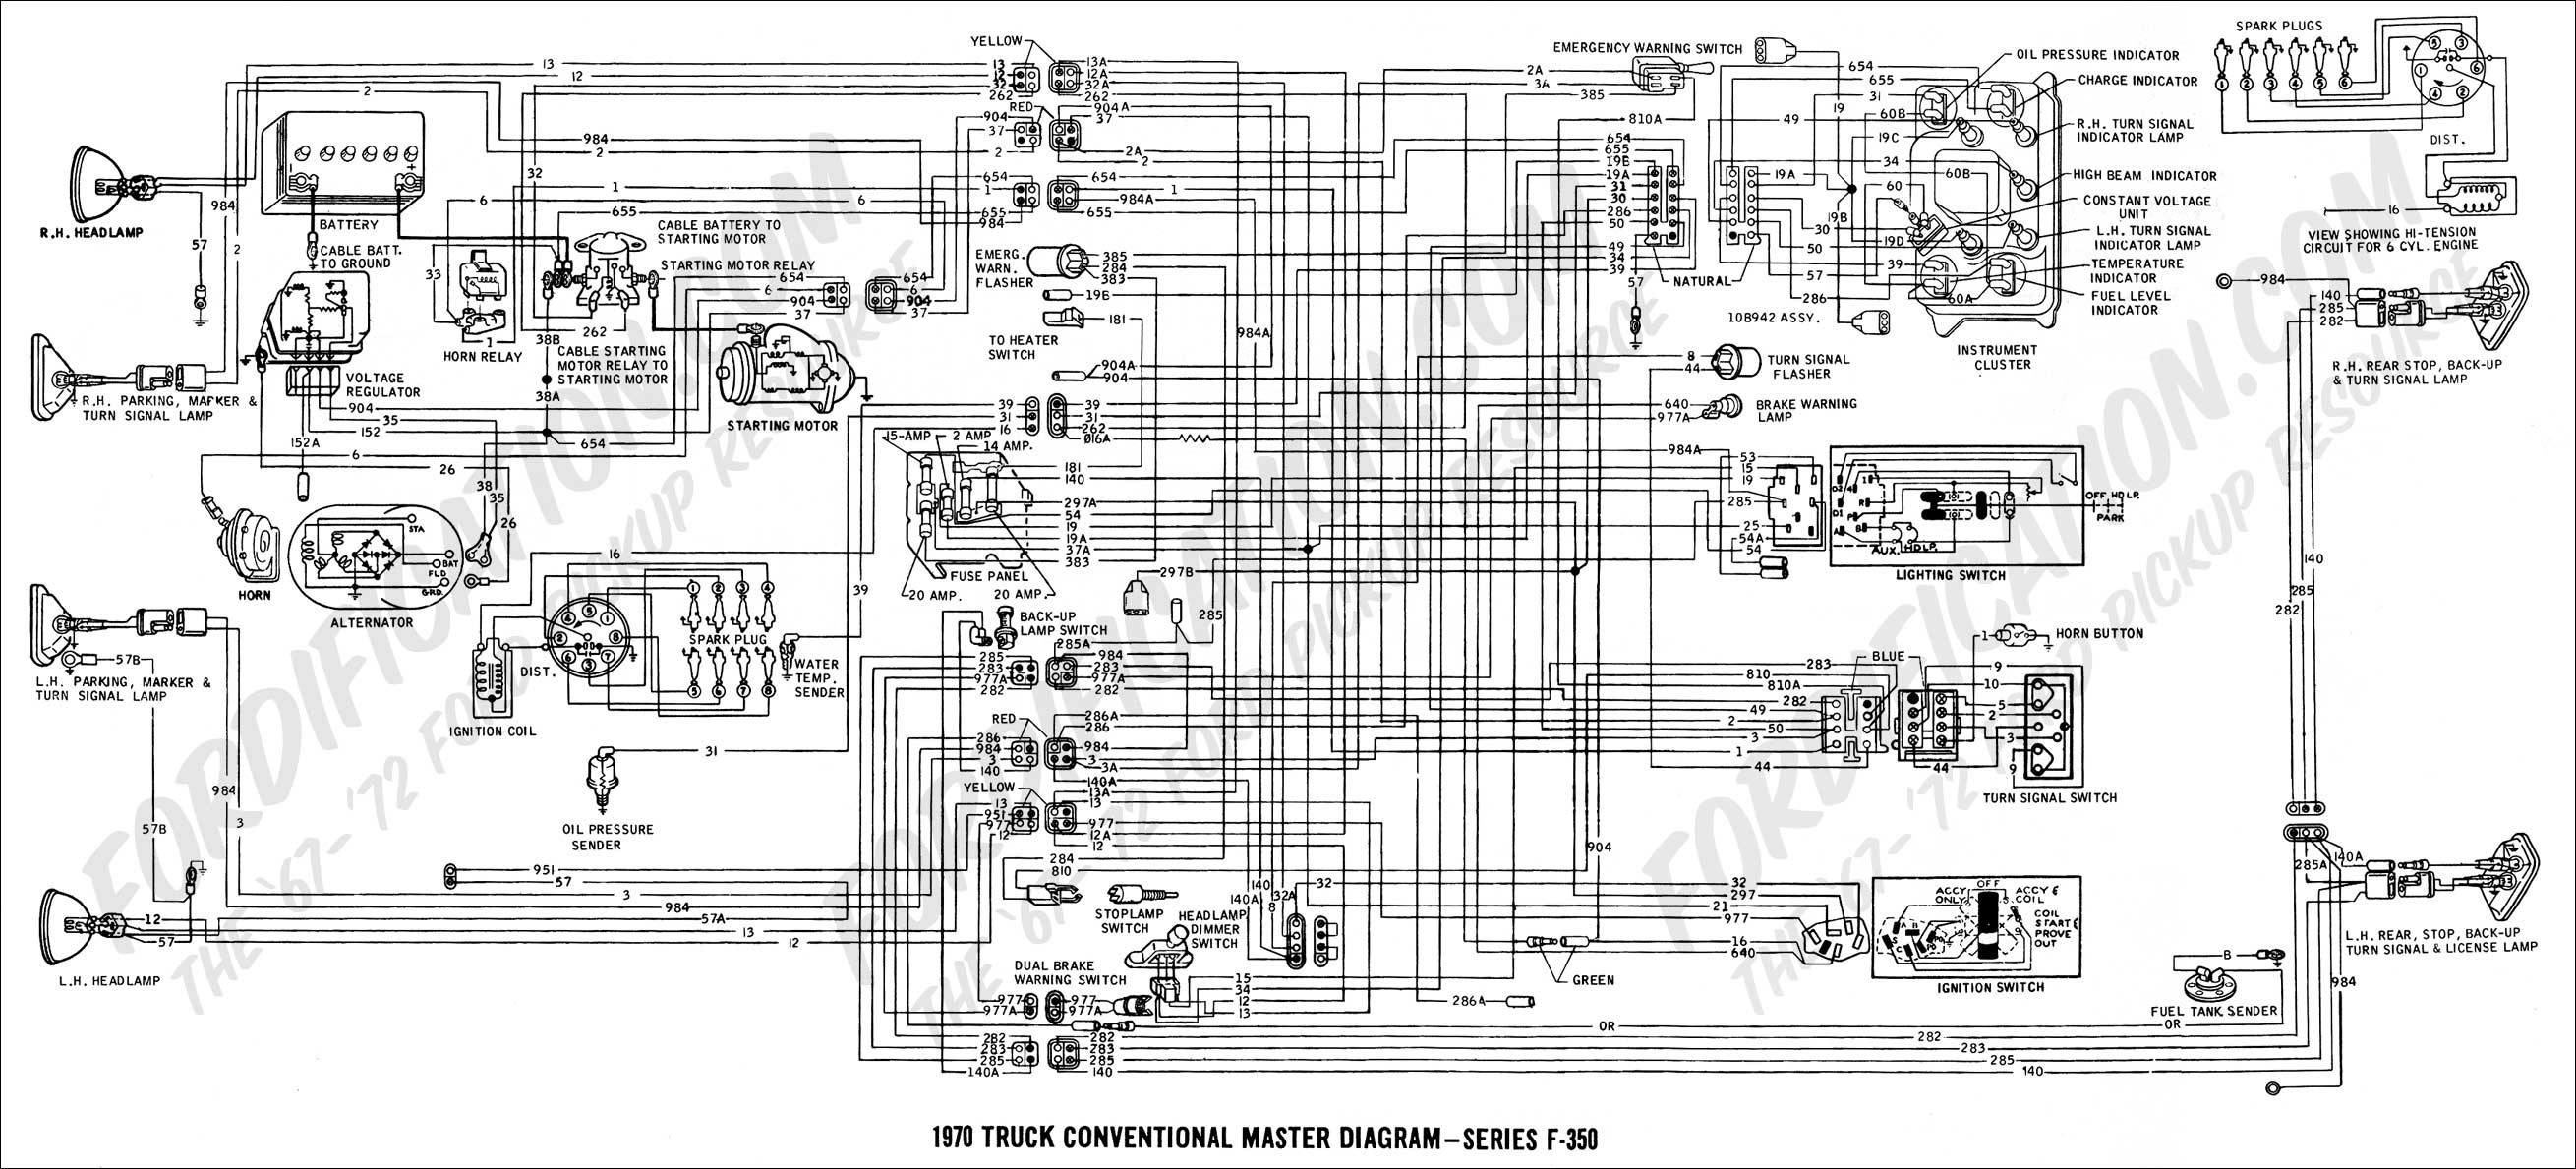 Baja Designs Wiring Diagram F350 4×4 Wiring Another Blog About Wiring Diagram • Of Baja Designs Wiring Diagram